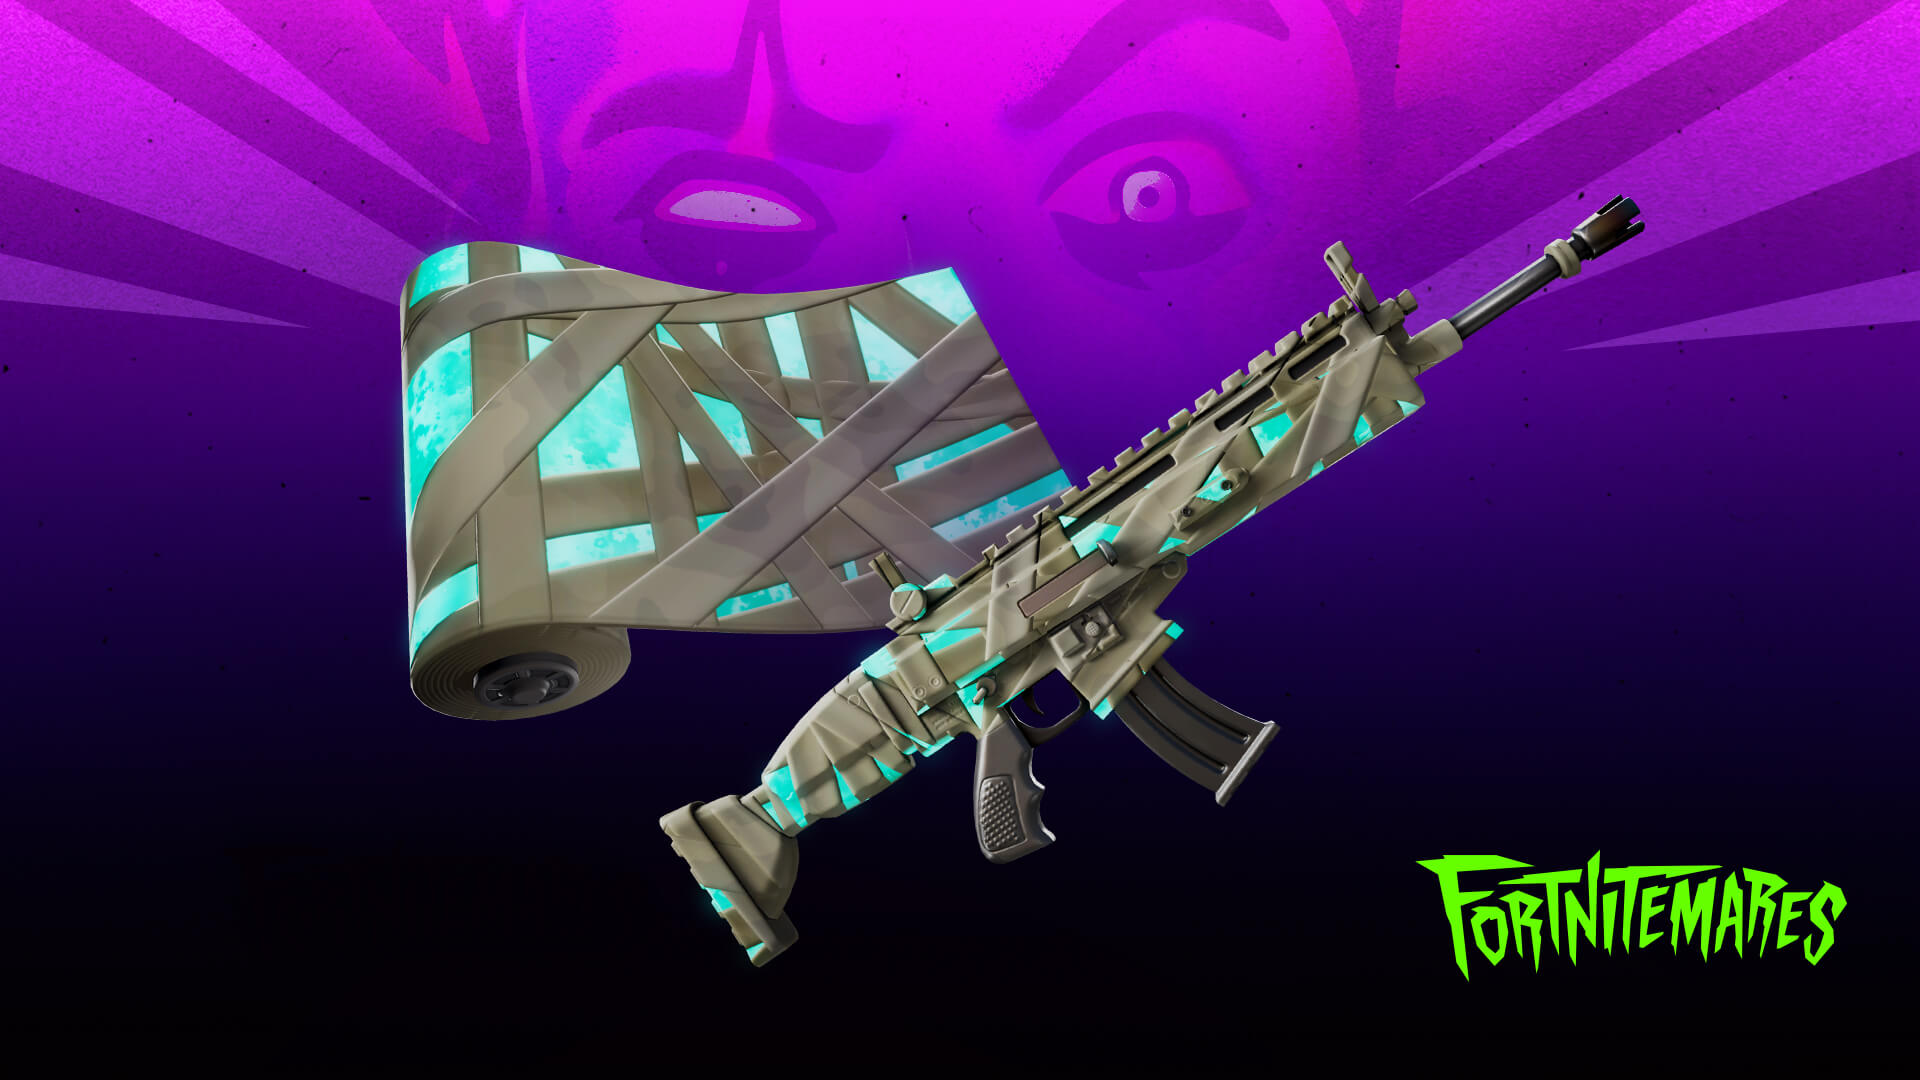 Fortnitemares Wrath's Wrath Wrap